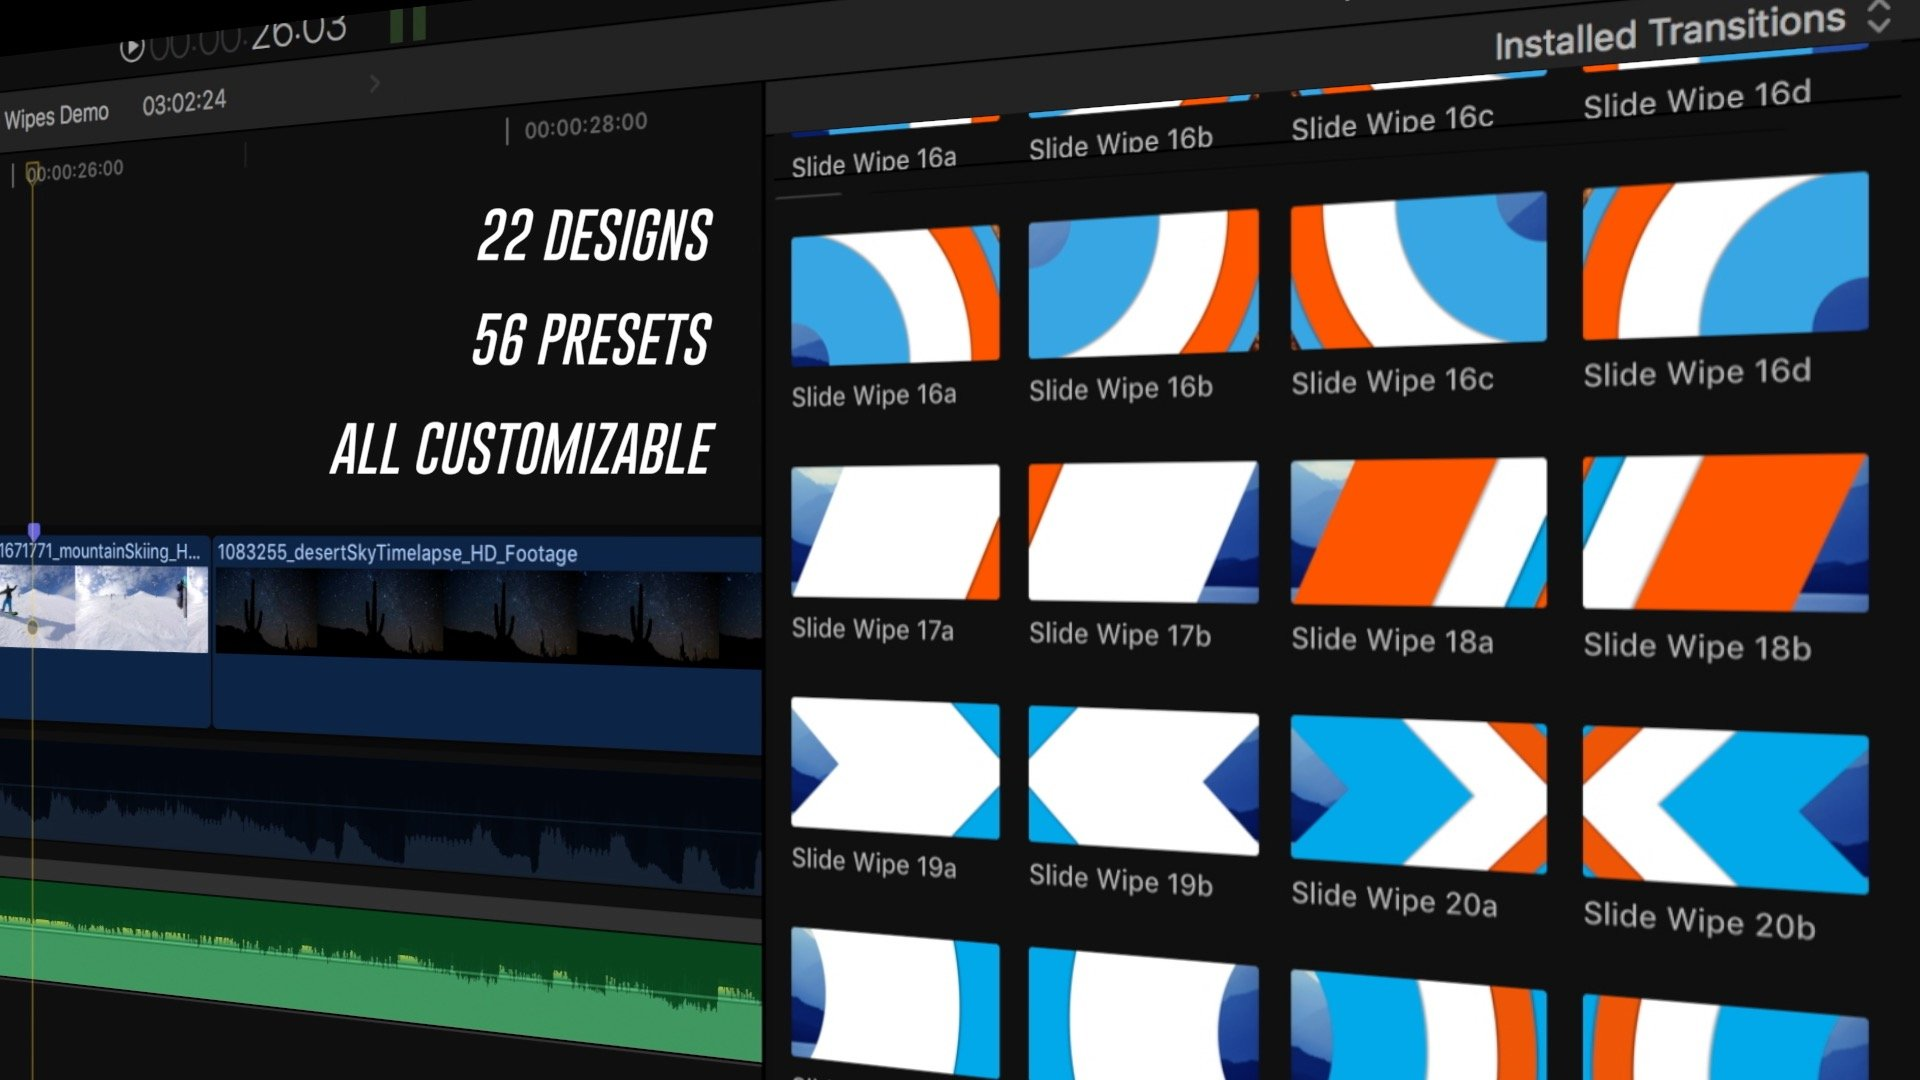 NEW Slide Wipes! FCPX Transitions